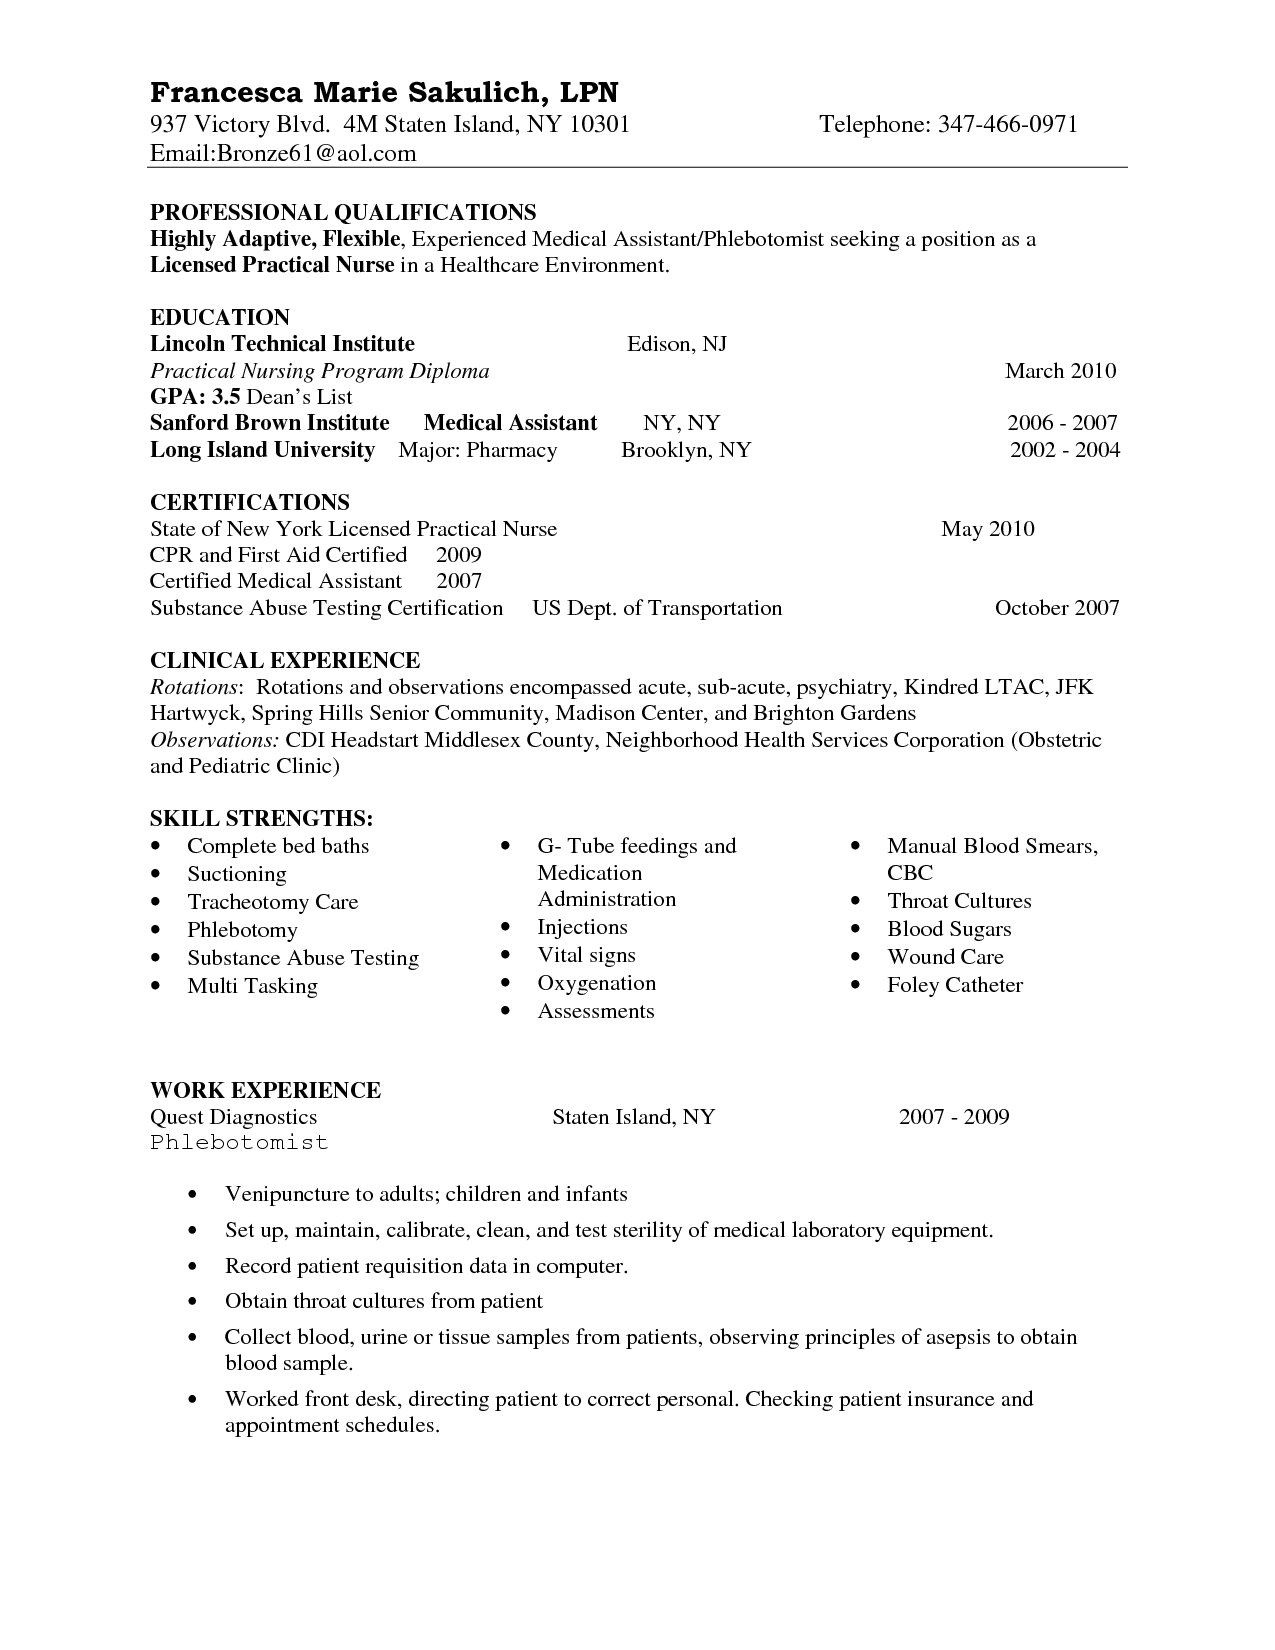 Nursing Student Resume Template Entry Level Lpn Resume Sample  Nursing  Pinterest  Nursing